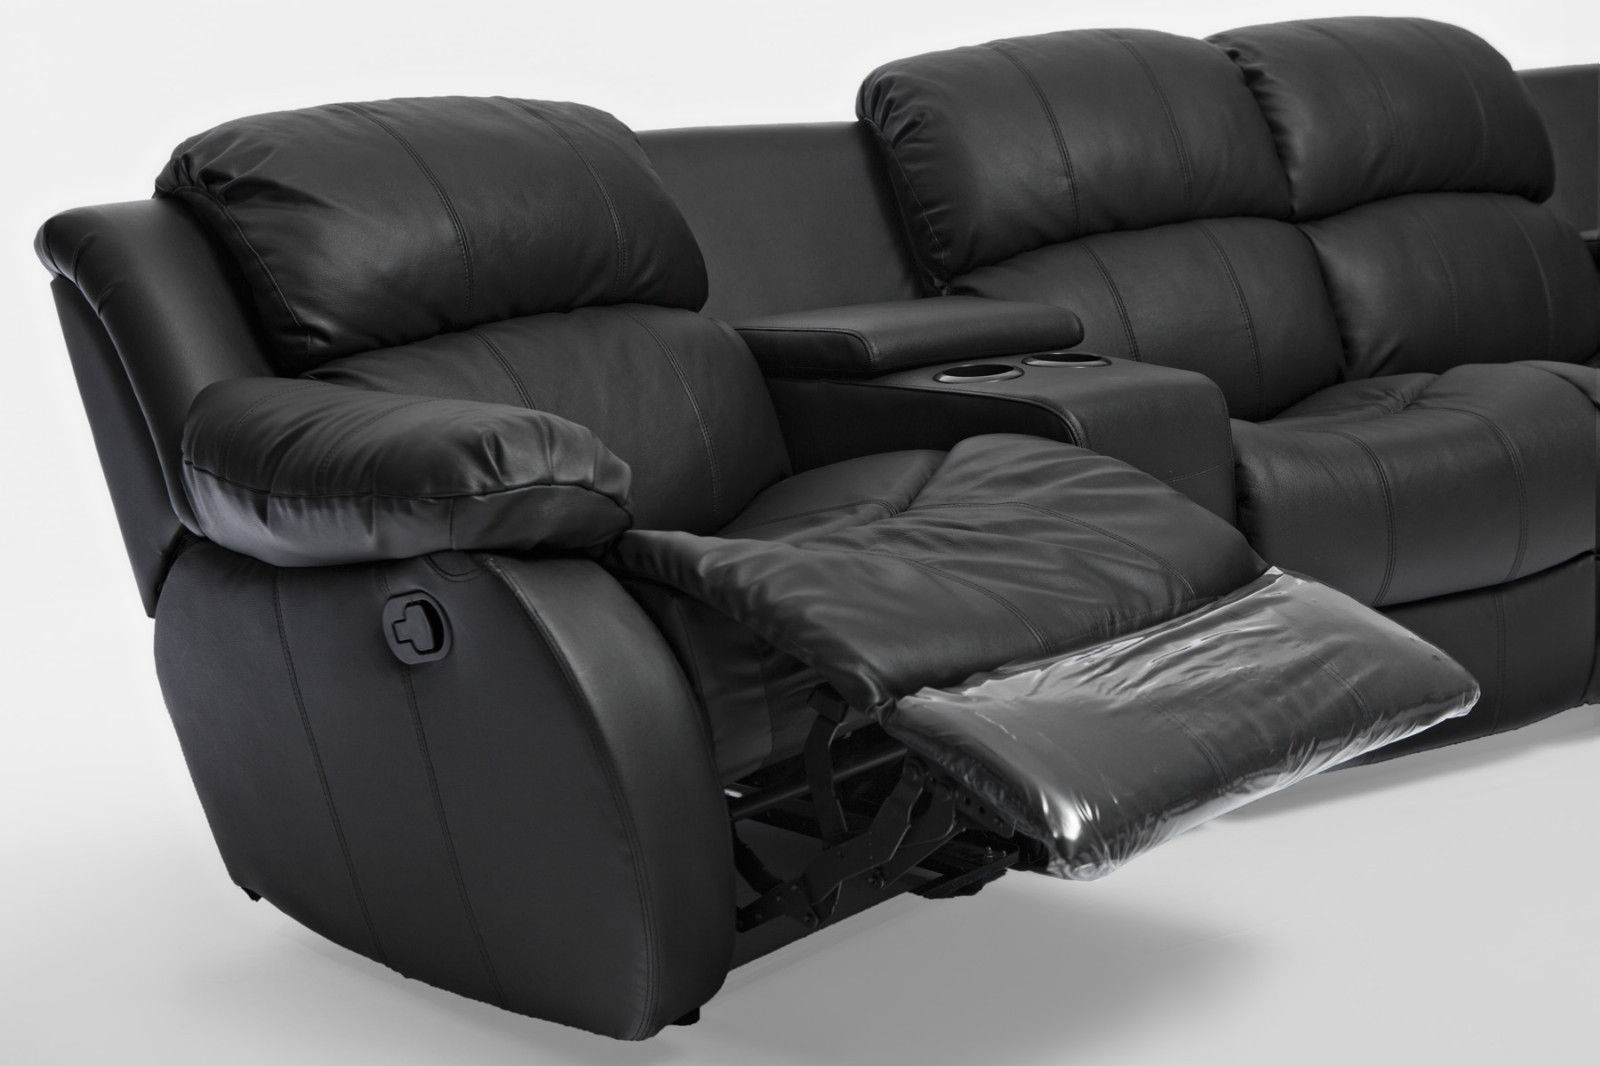 Nikki Brand New Black Leather 4 Seater Home Theatre Lounge